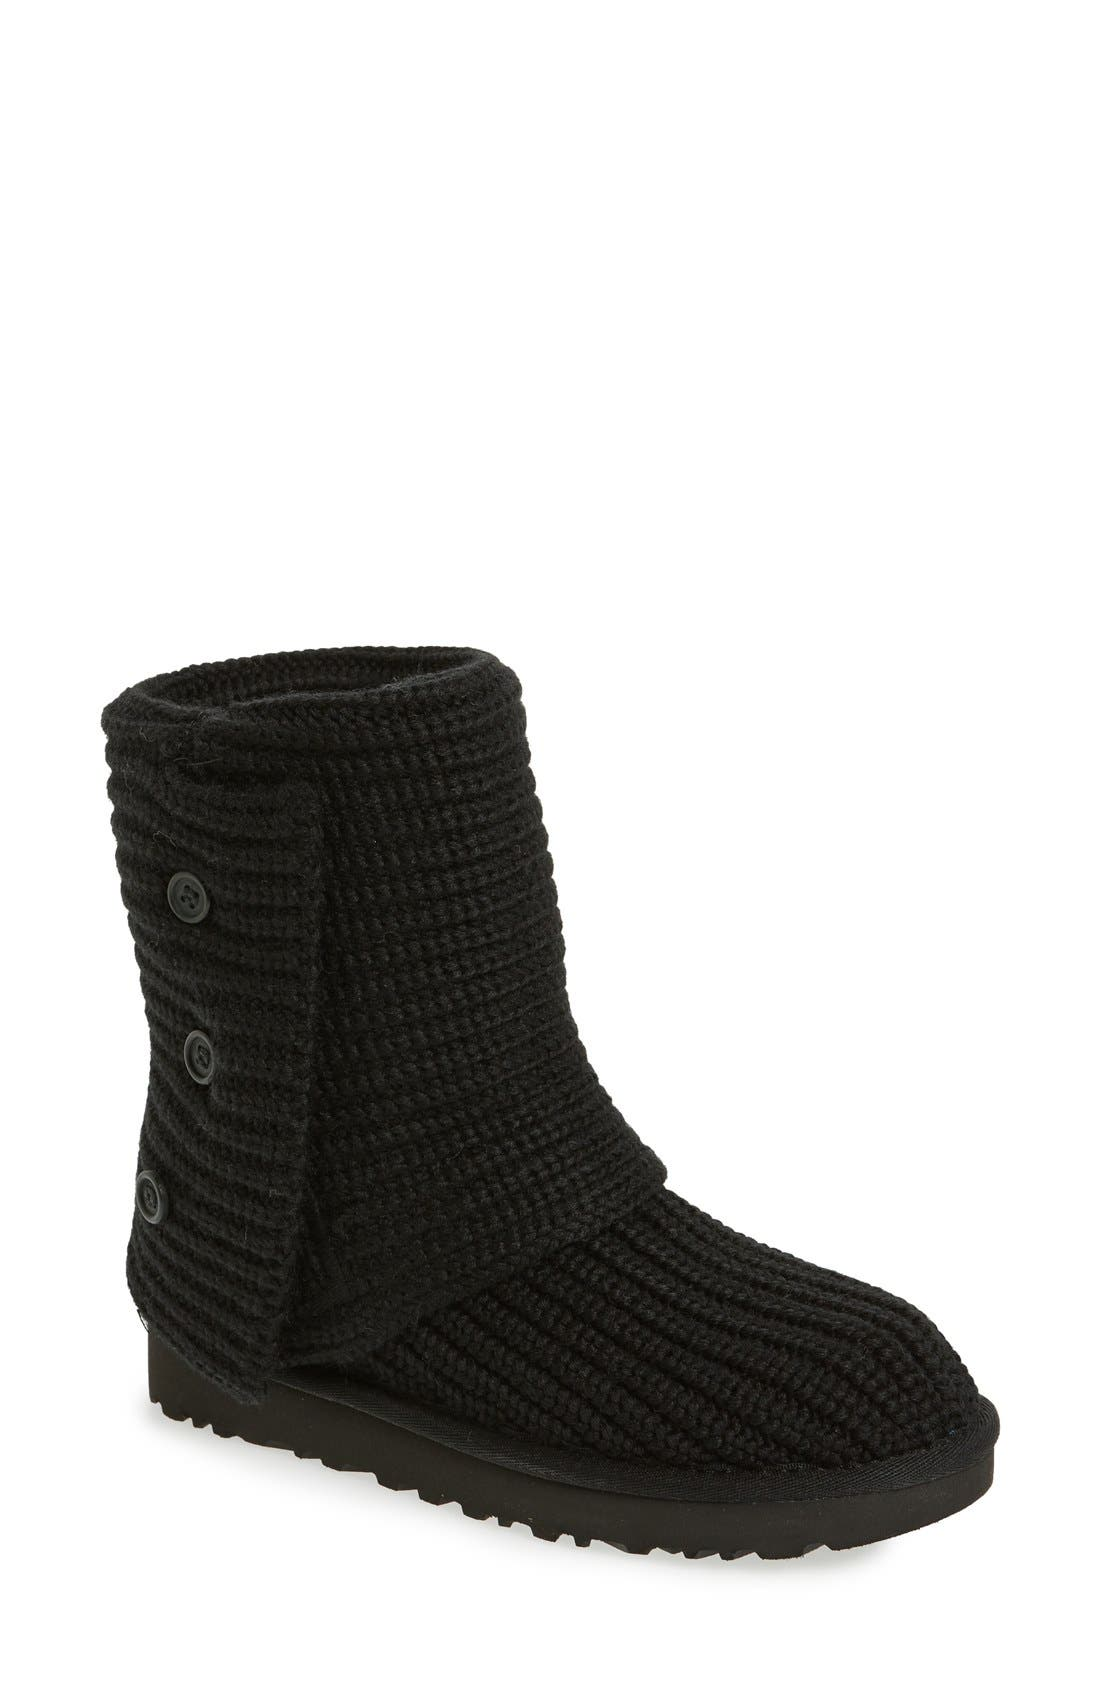 Classic Cardy II Knit Boot,                             Main thumbnail 1, color,                             BLACK FABRIC